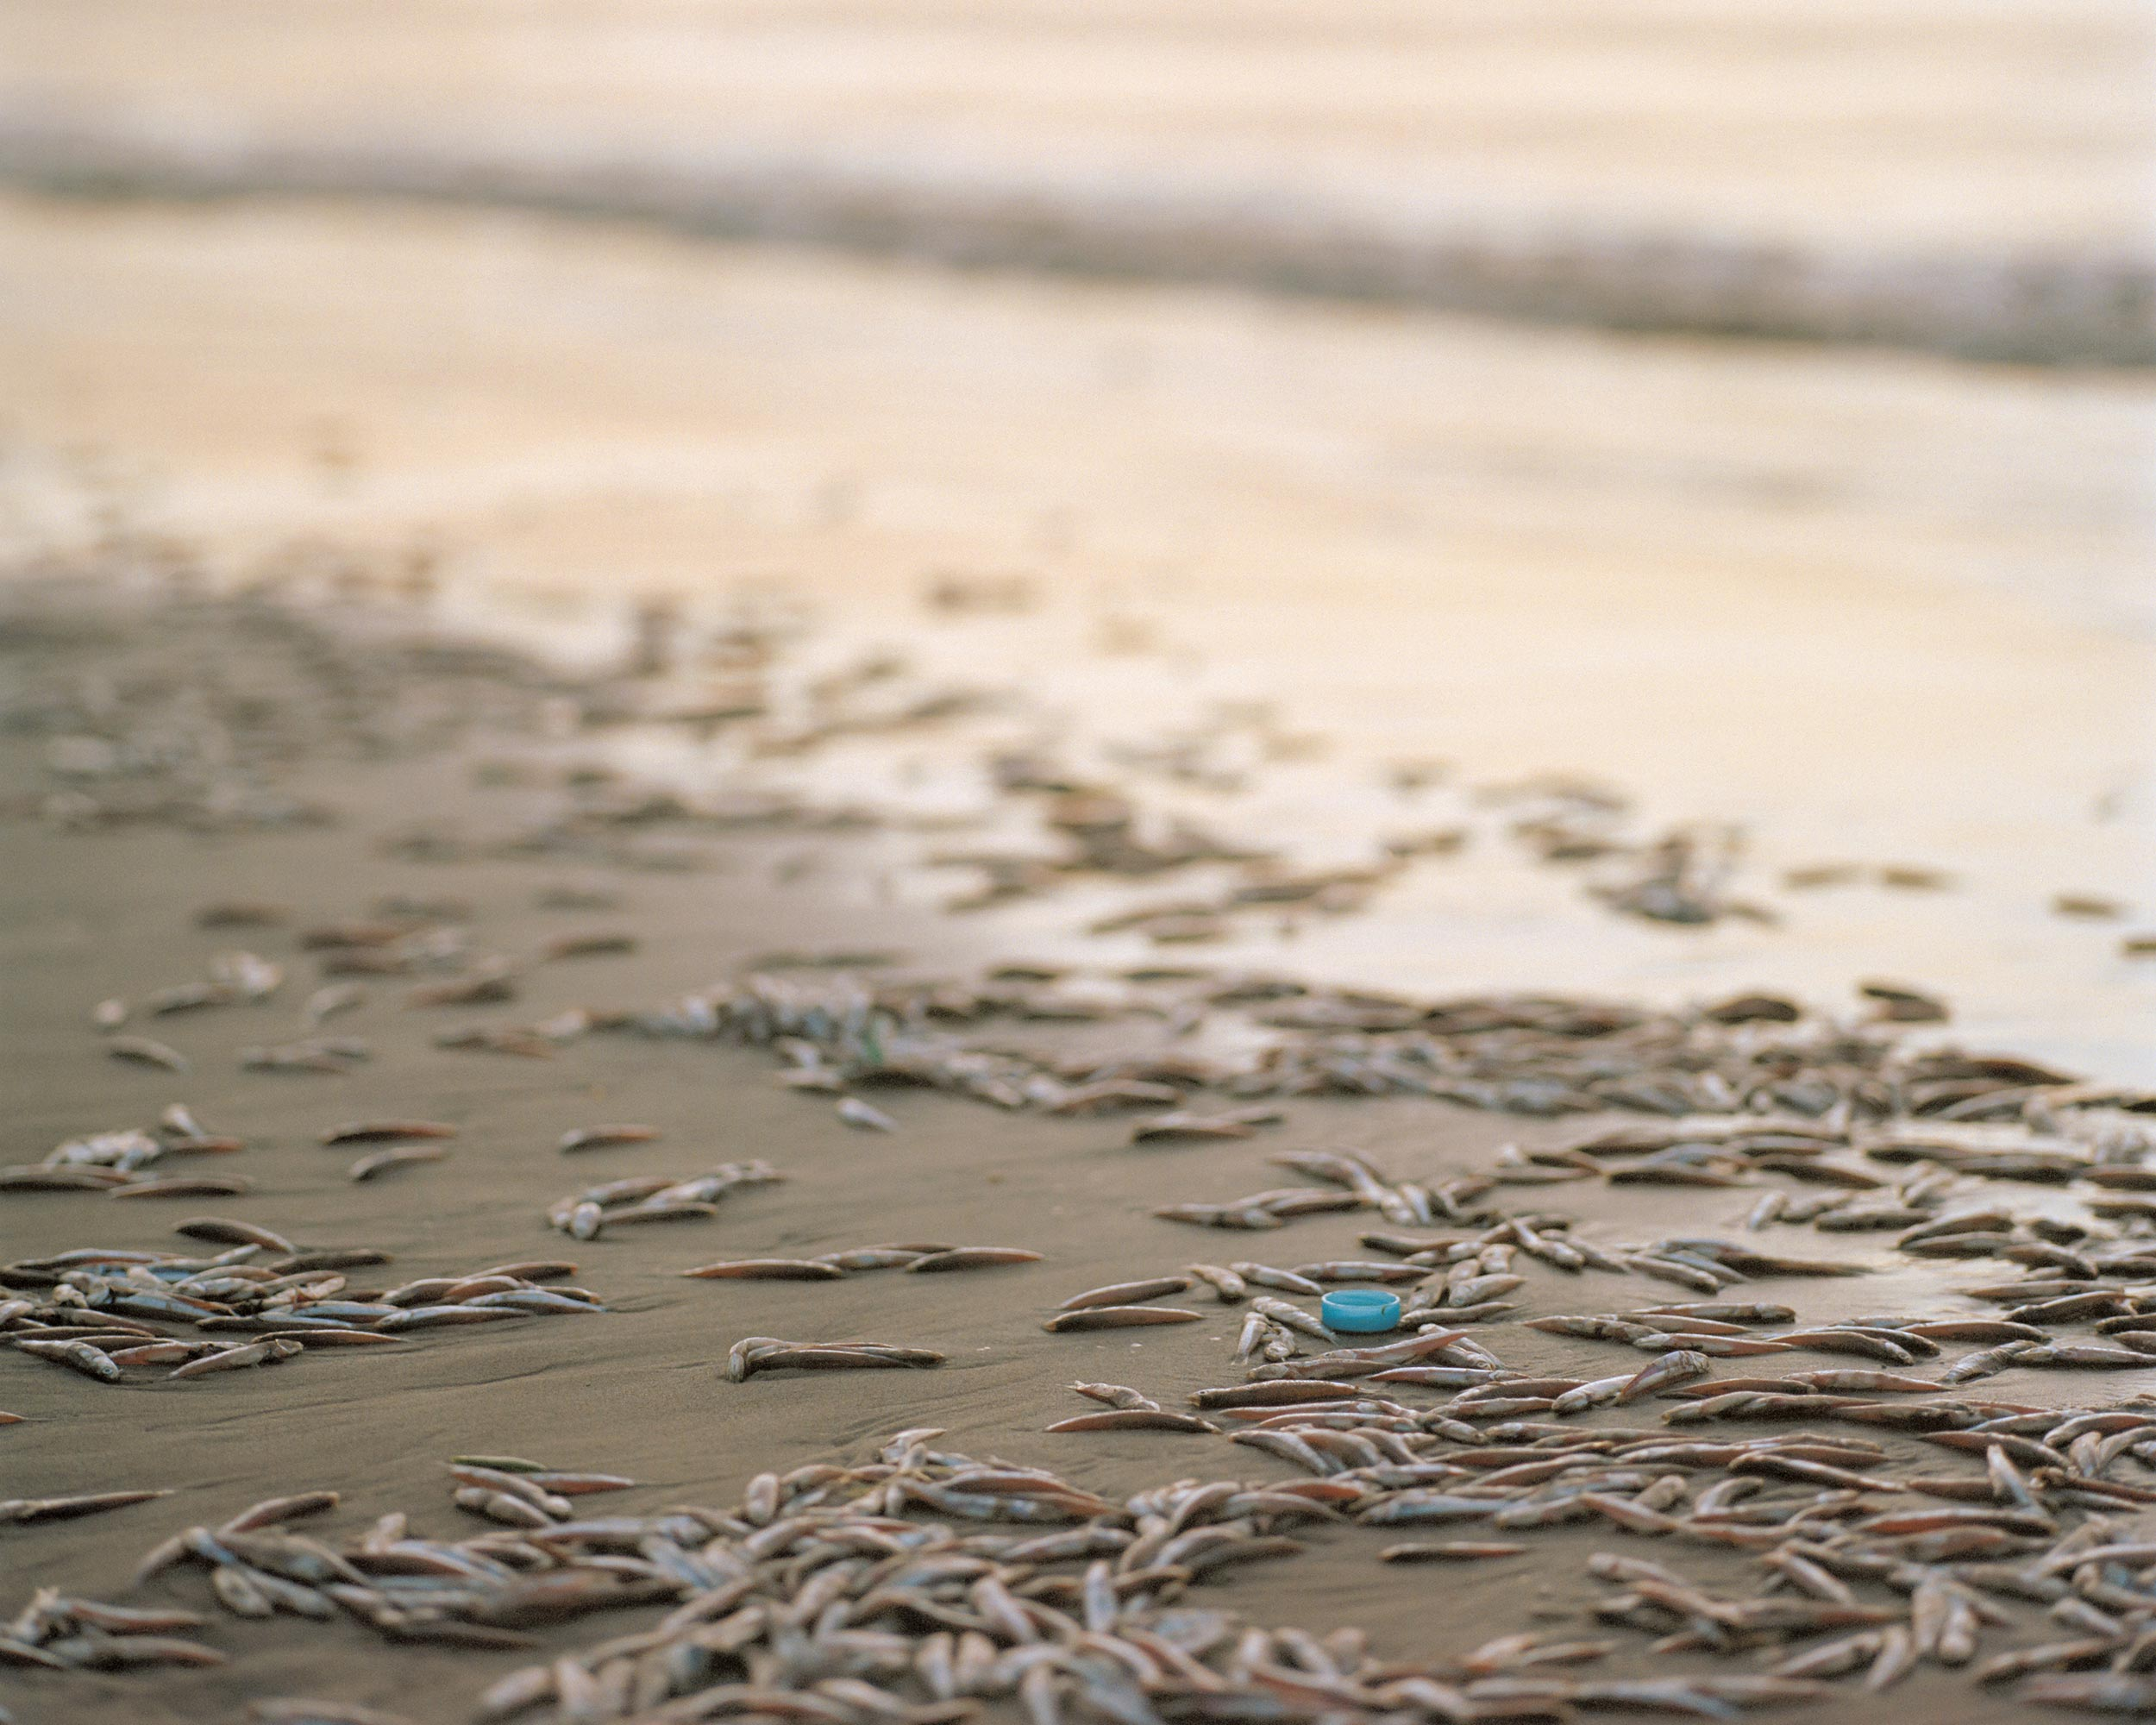 photograph of fish on beach from series XO